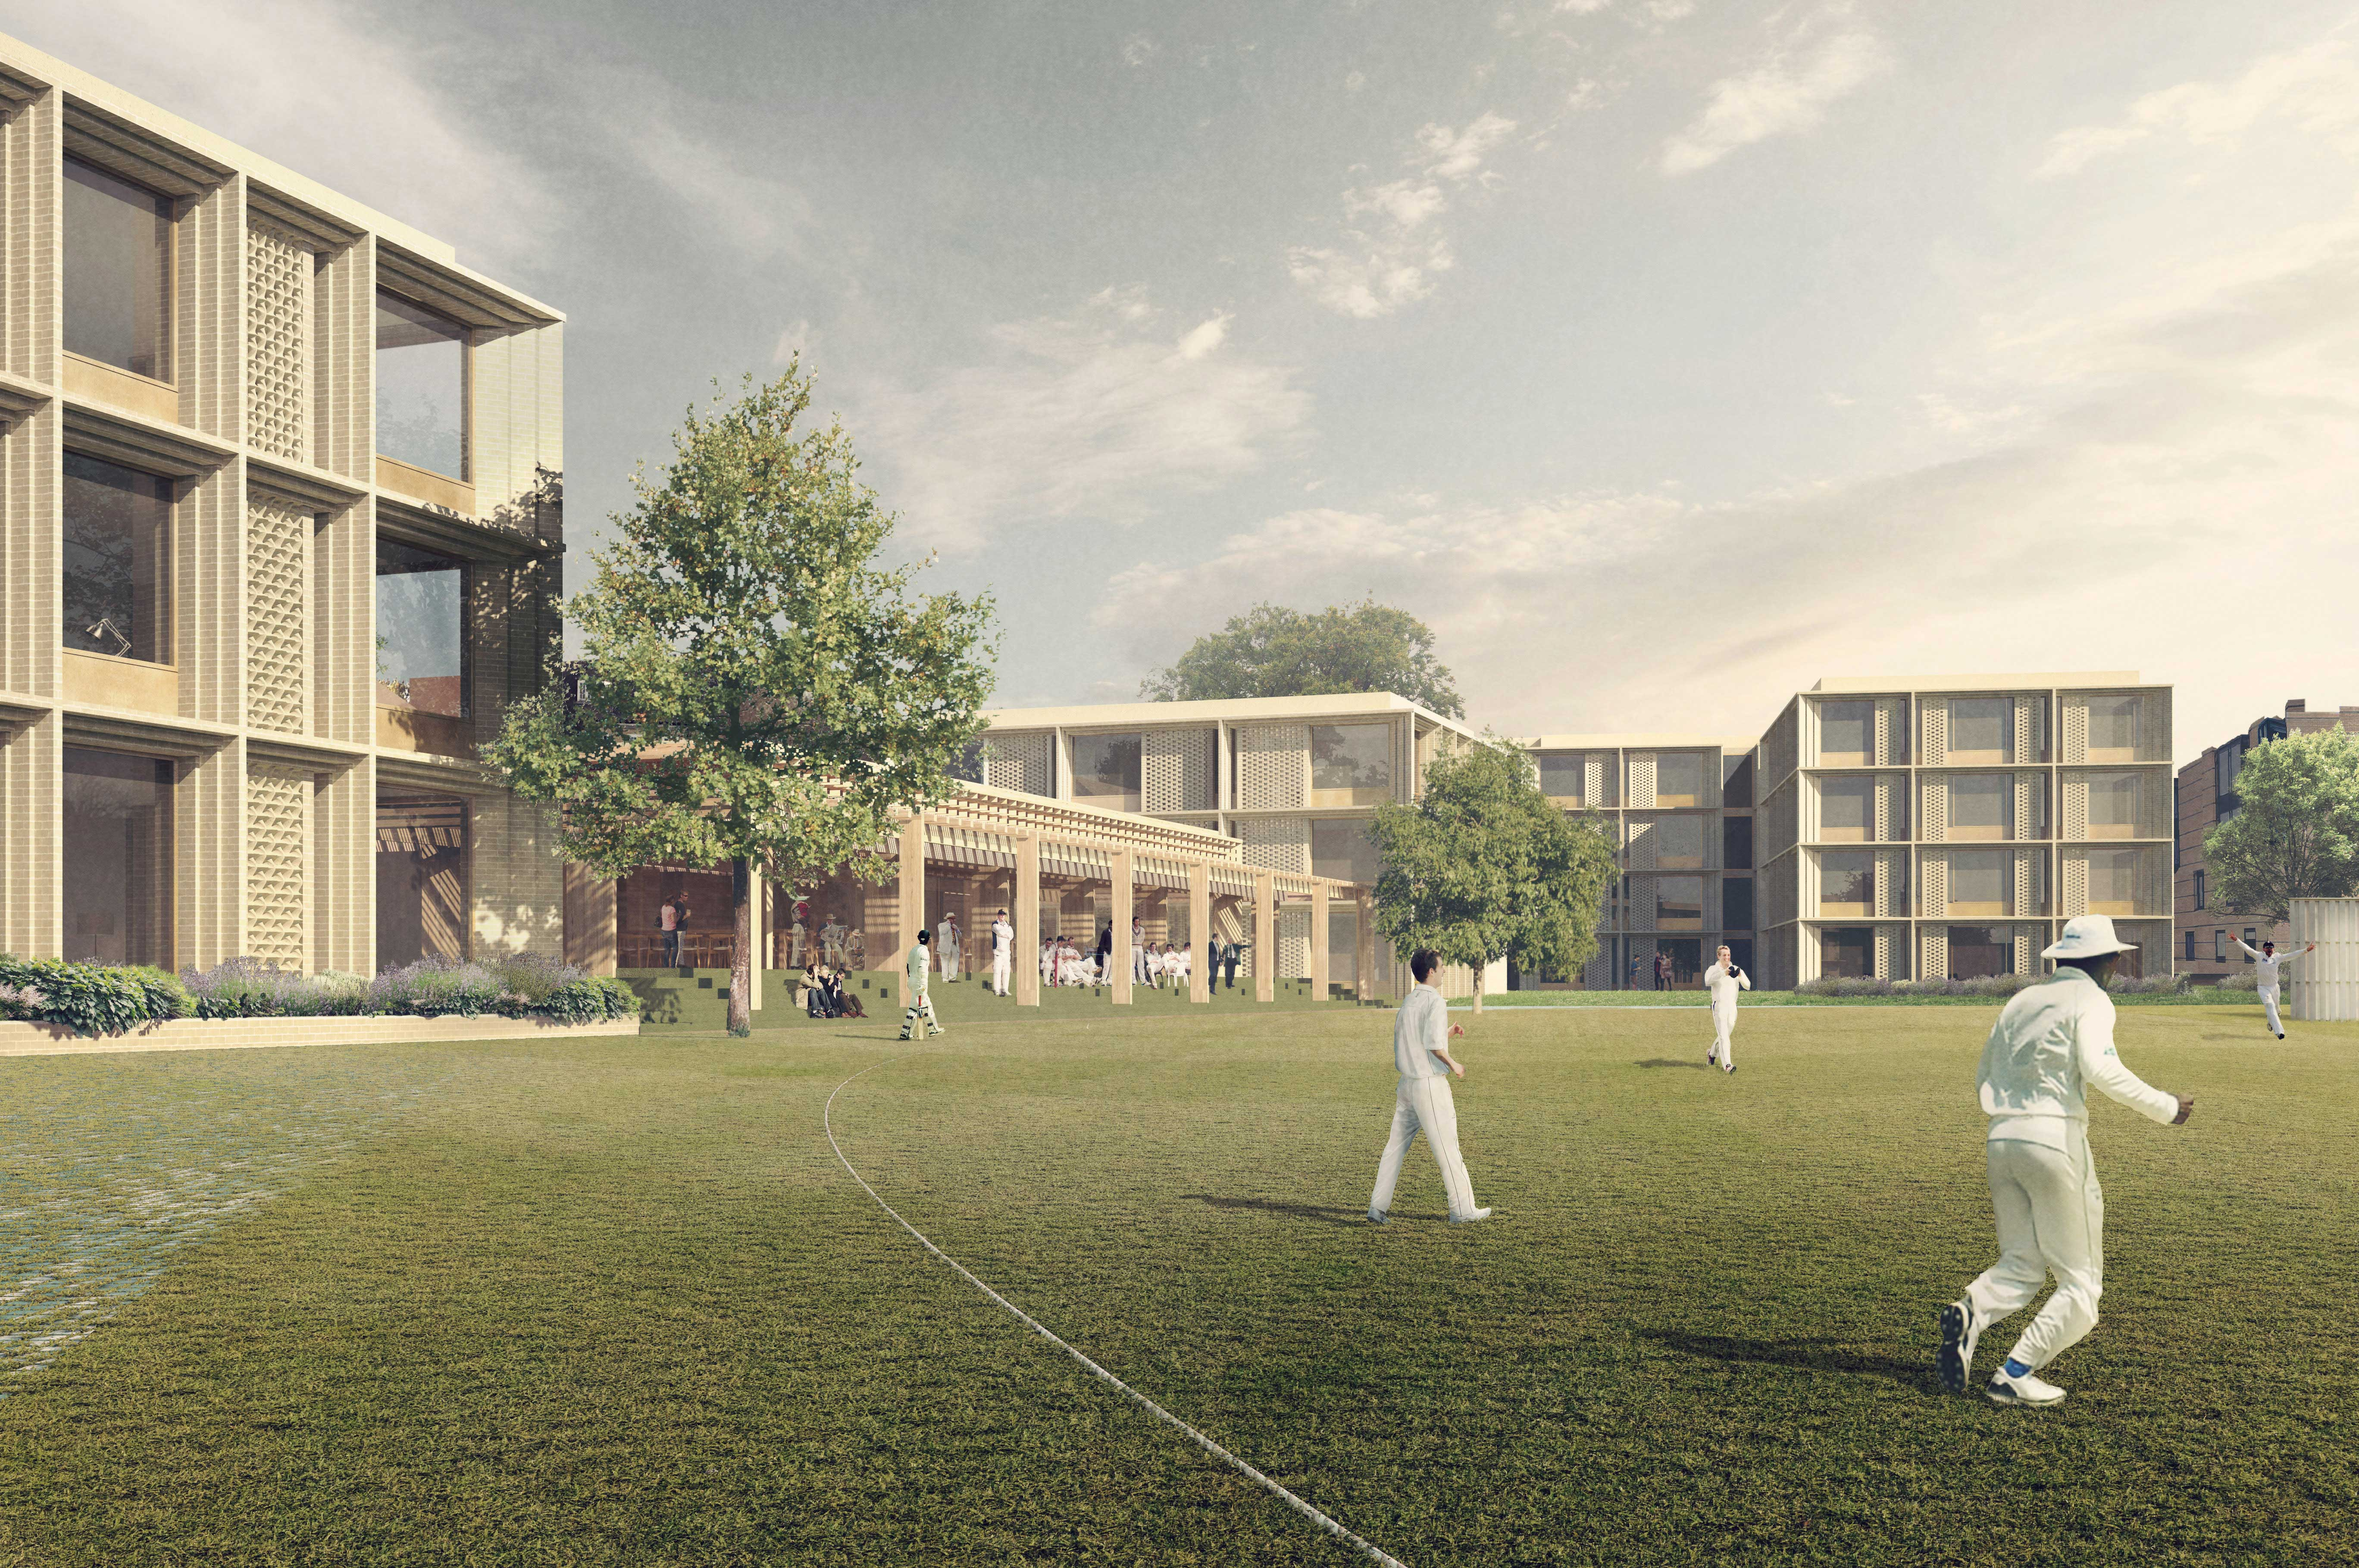 Artist impression of Masters Field Project development (image courtesy of Niall McLaughlin Architects Ltd)